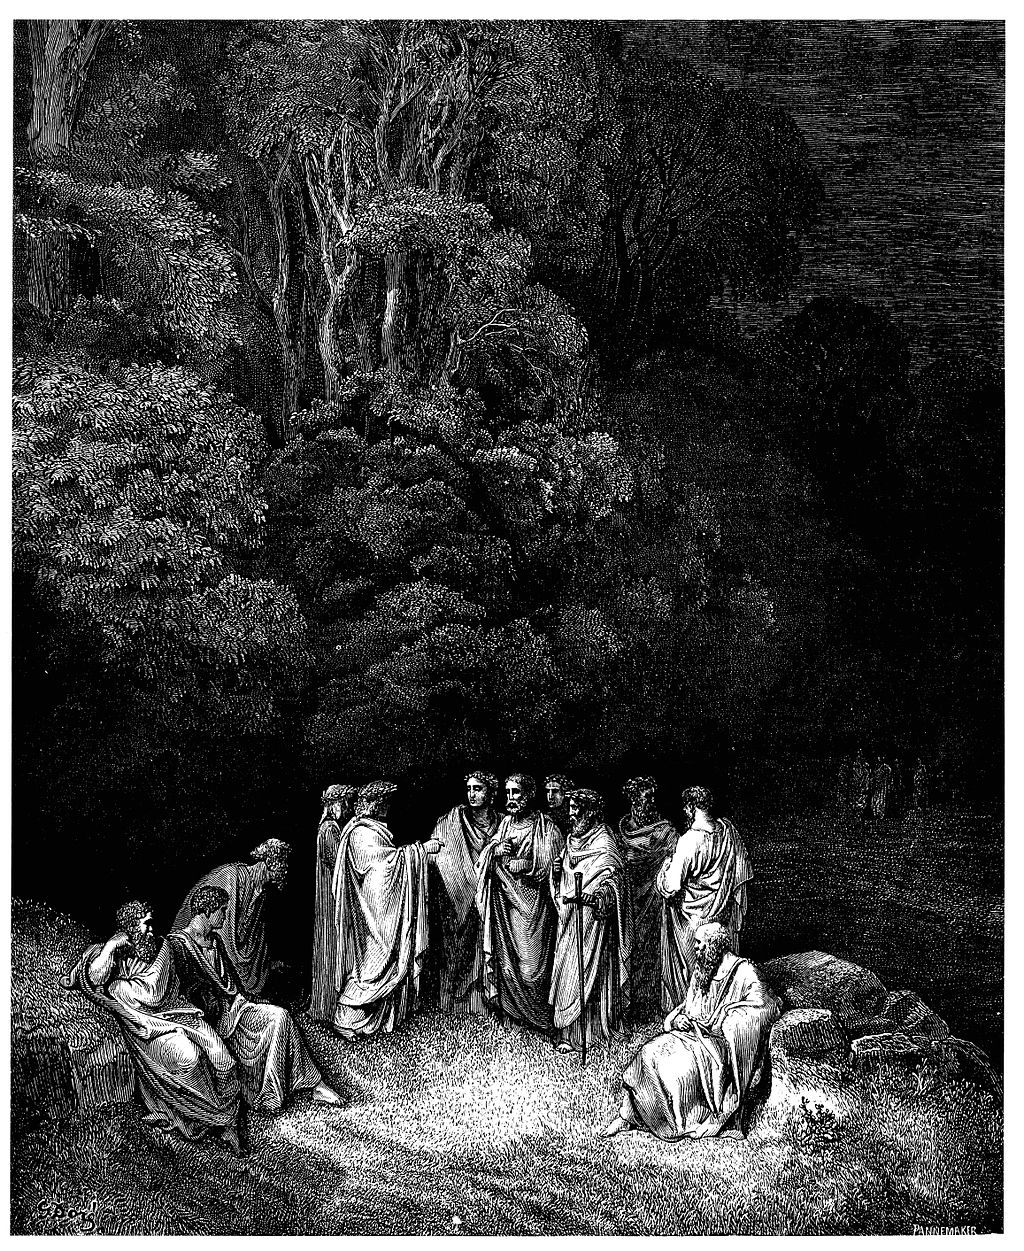 Gustave Doré - Dante Alighieri - Inferno - Plate 12 (Canto IV - Limbo, Dante is accepted as an equal by the great Greek and Roman poets)